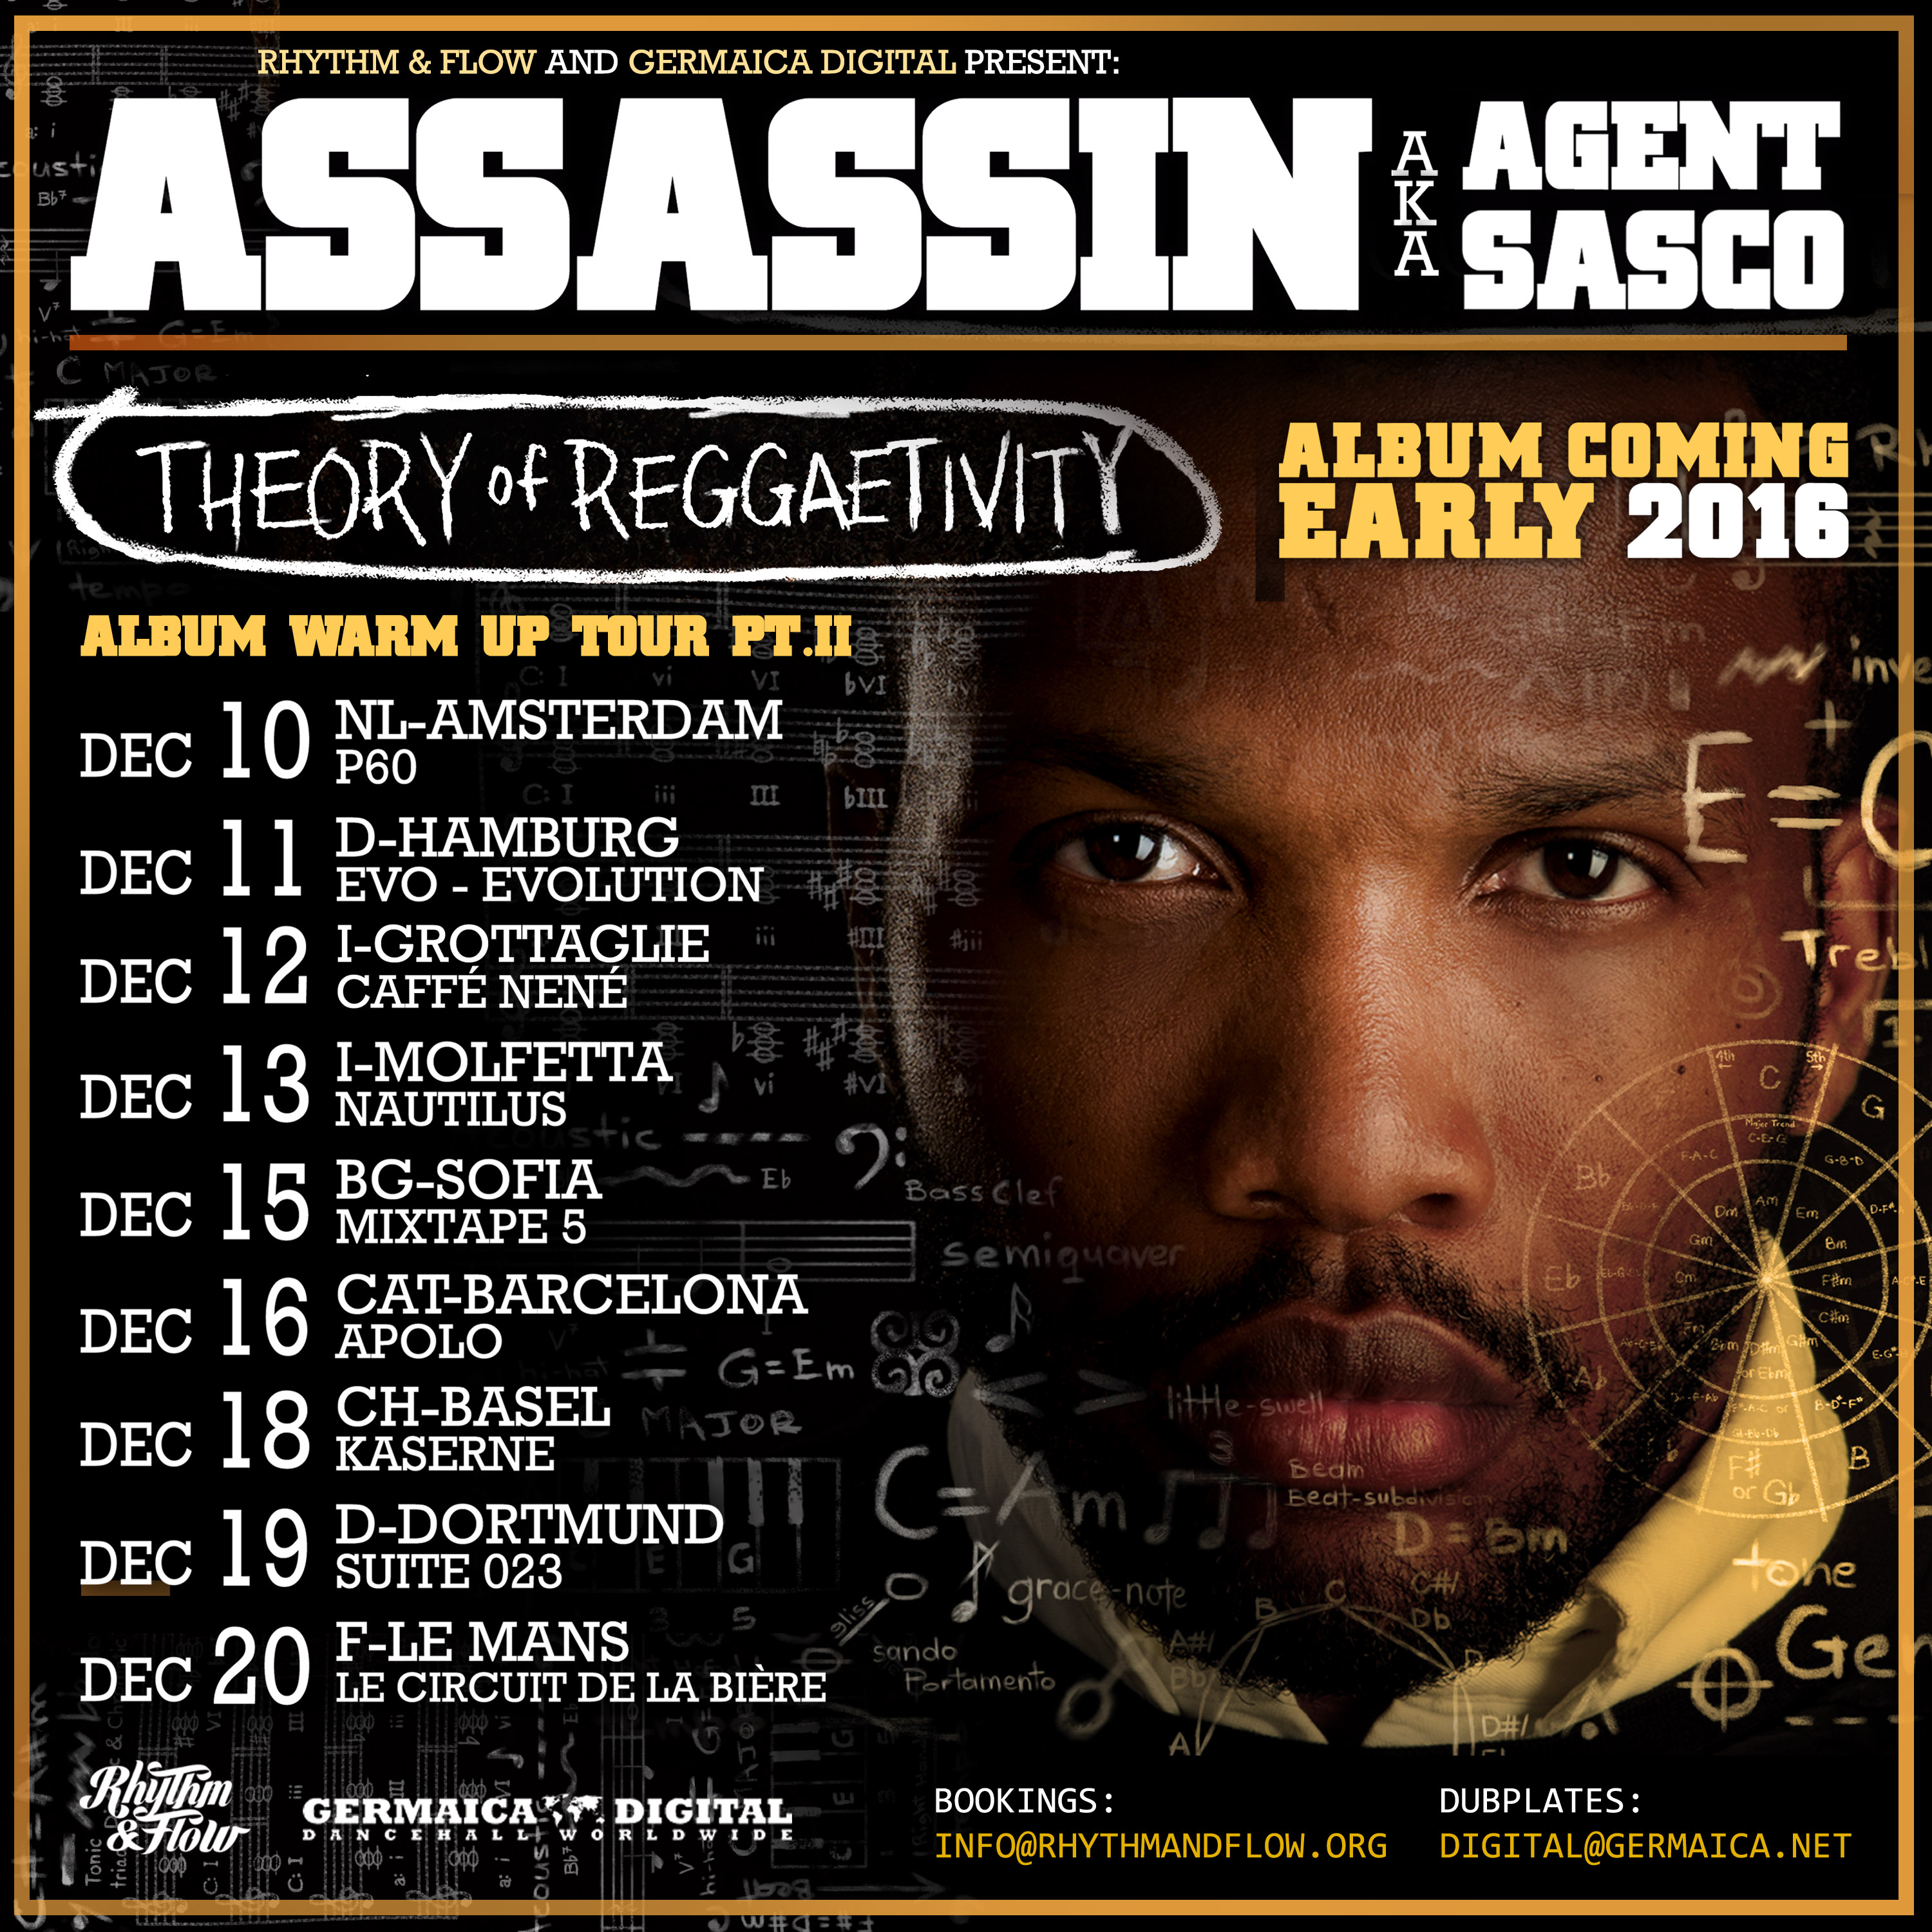 THEORY OF REGGEATIVITY – ALBUM COMING EARLY 2016 – ALBUM WARM UP TOUR PT. II